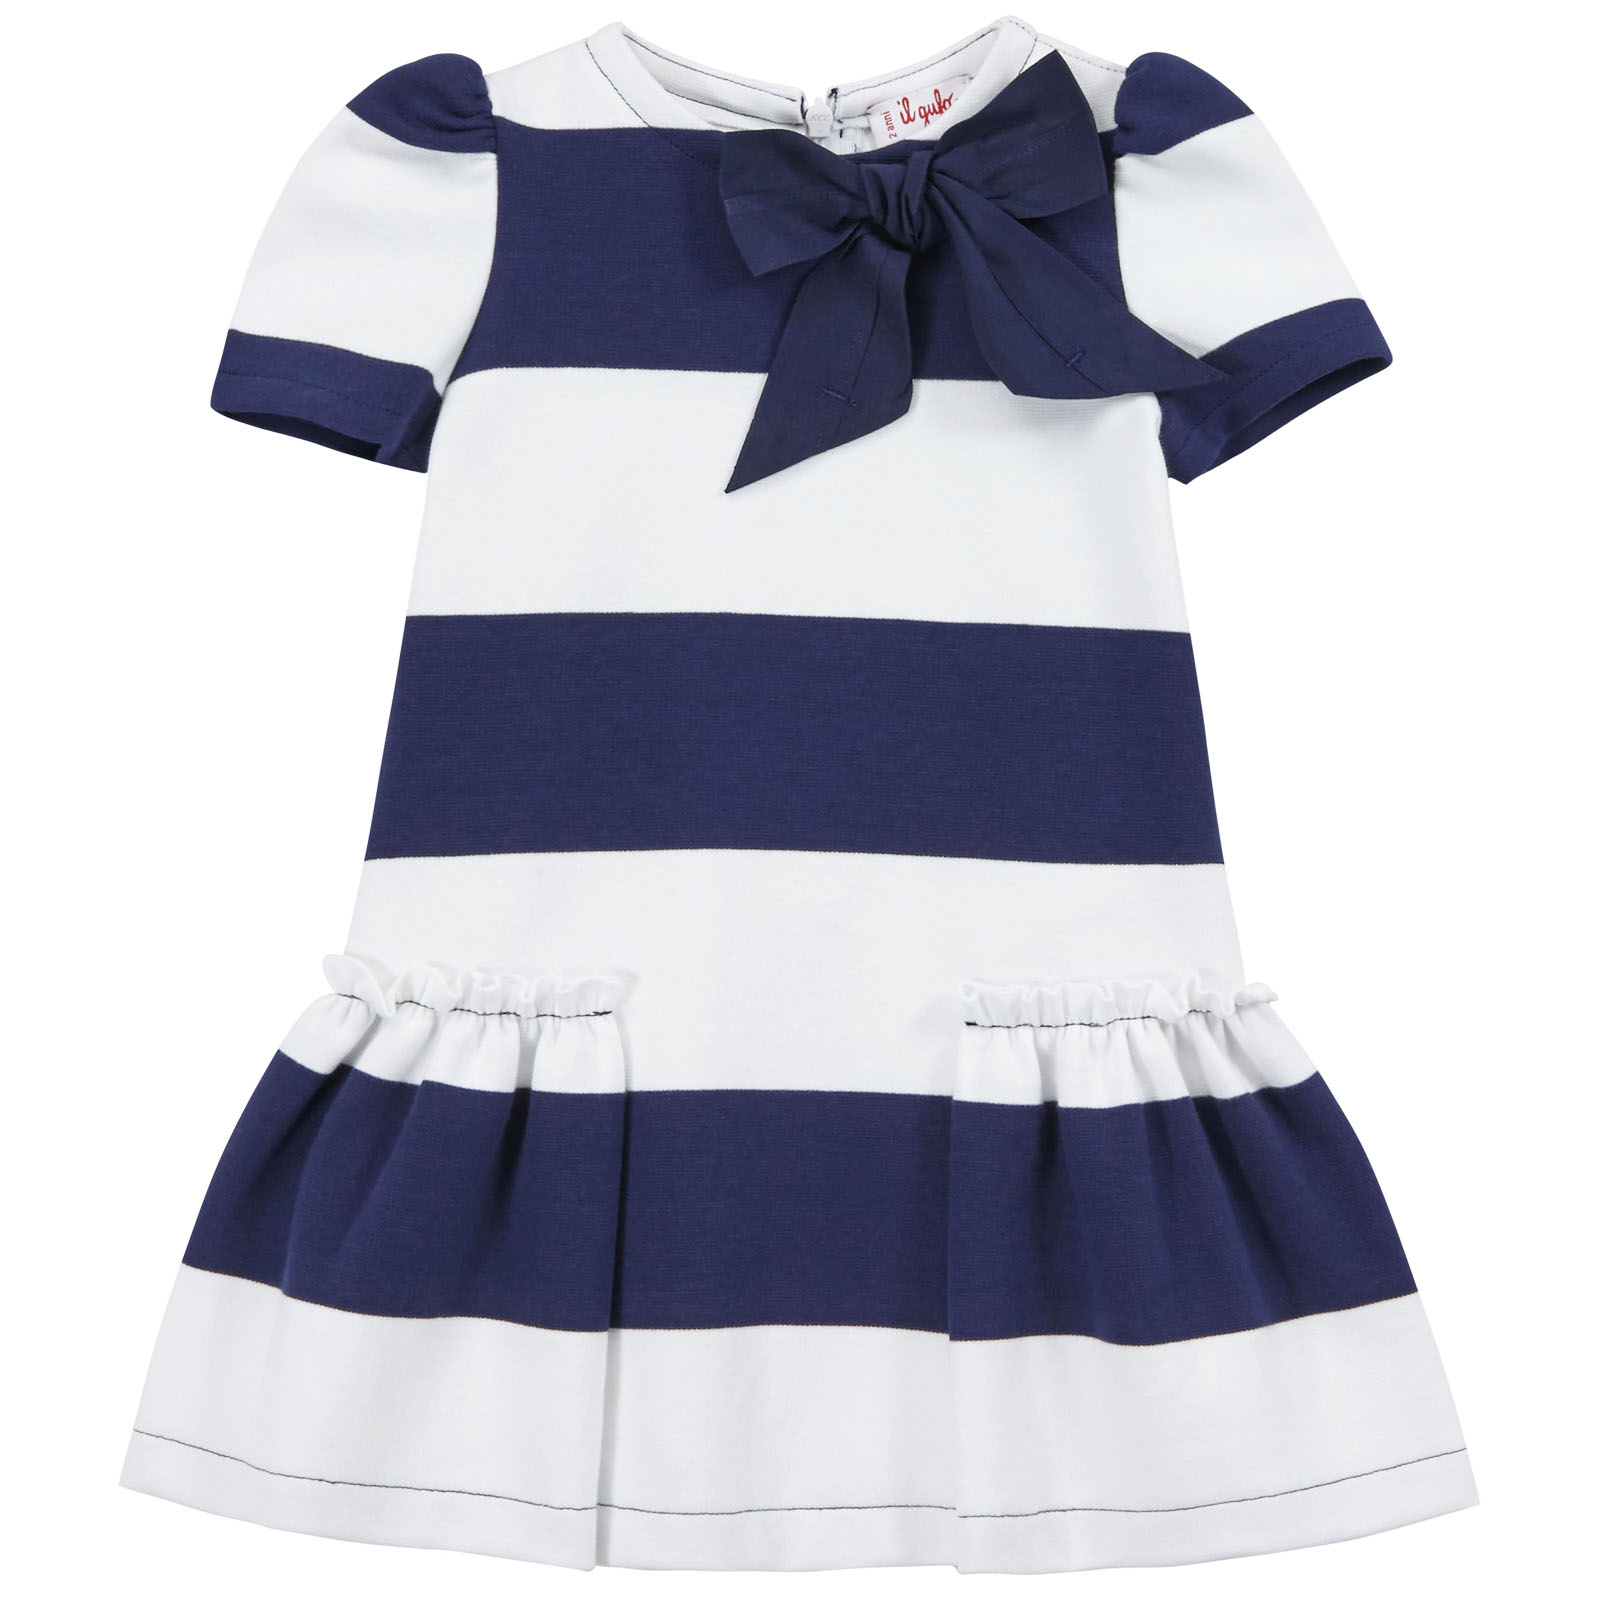 Il Gufo jersey dress with thick navy blue and white stripes